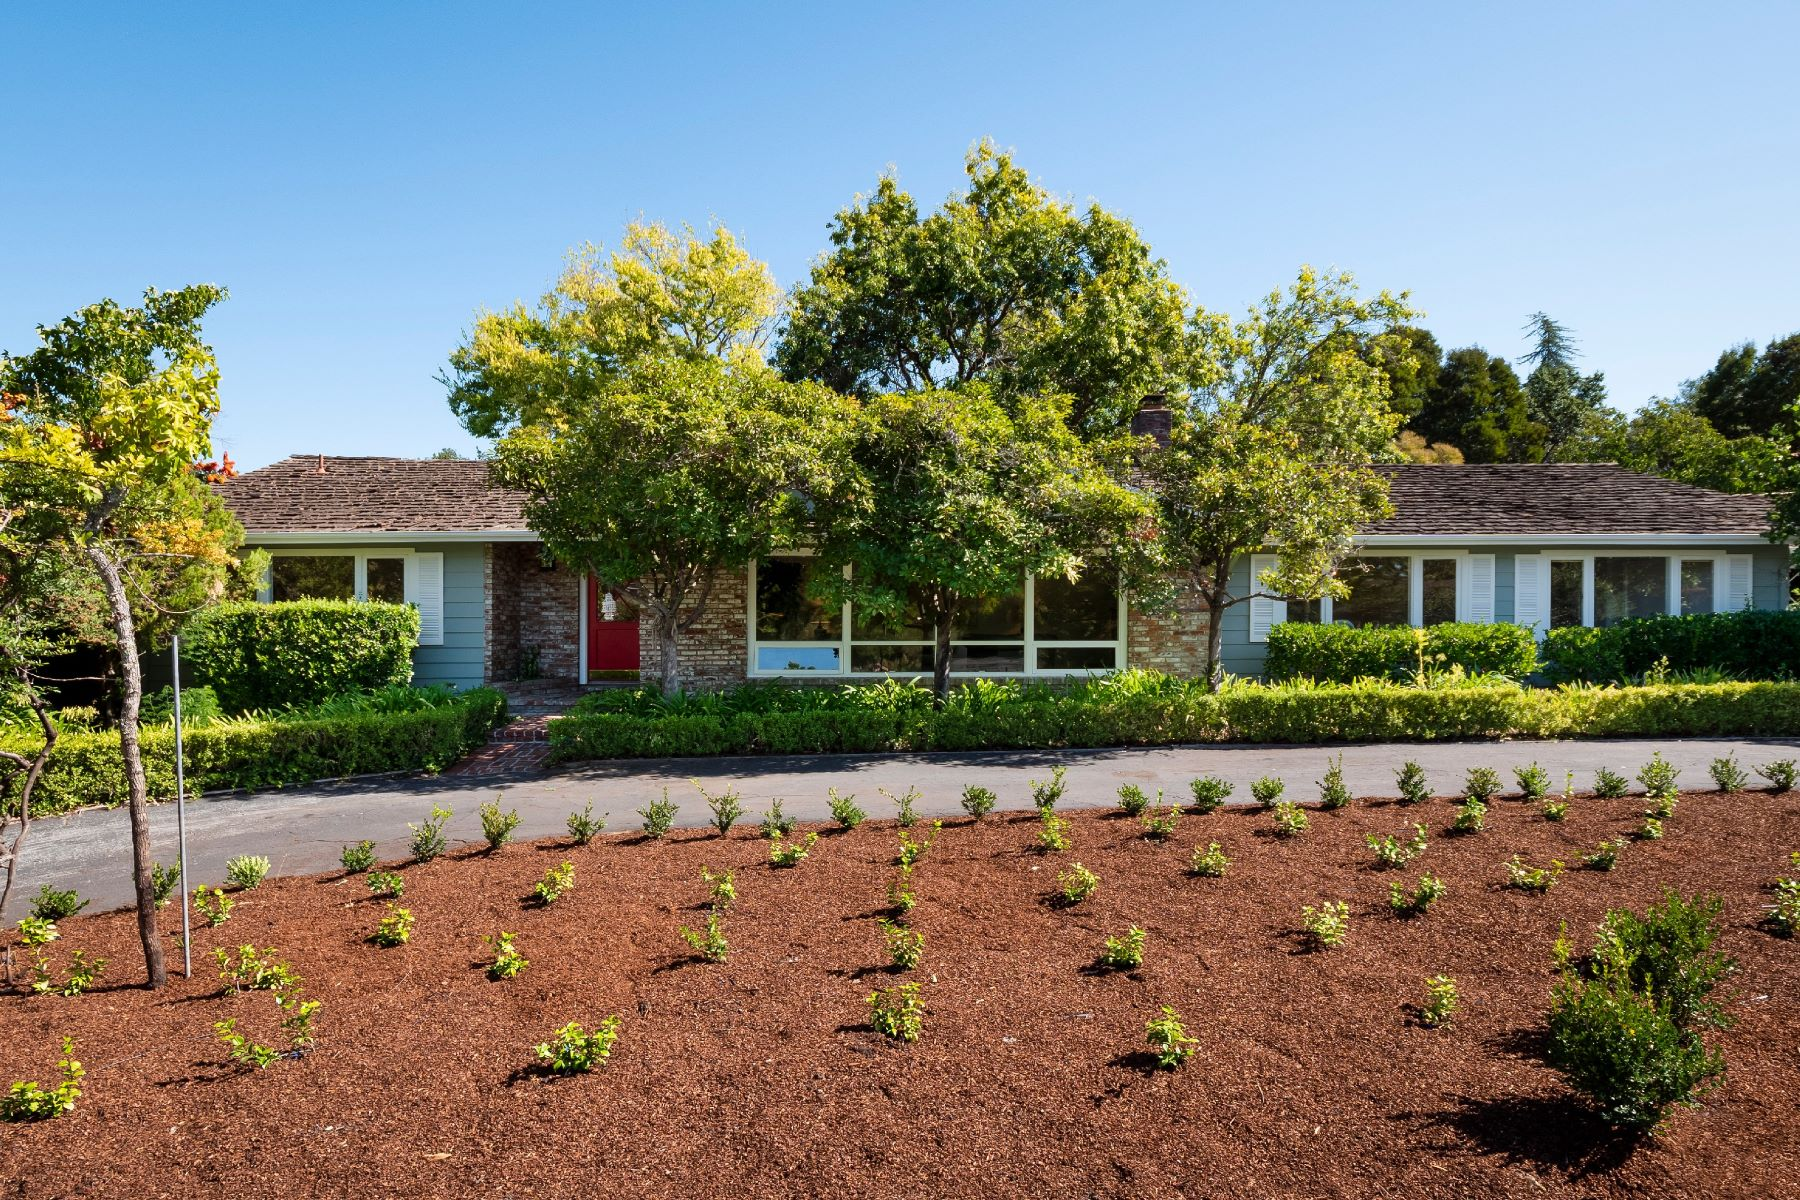 Single Family Homes for Sale at Rarely Available Sunny Woodside Ranch Home on a Quiet Cul-de-Sac 2165 Ward Way Woodside, California 94062 United States